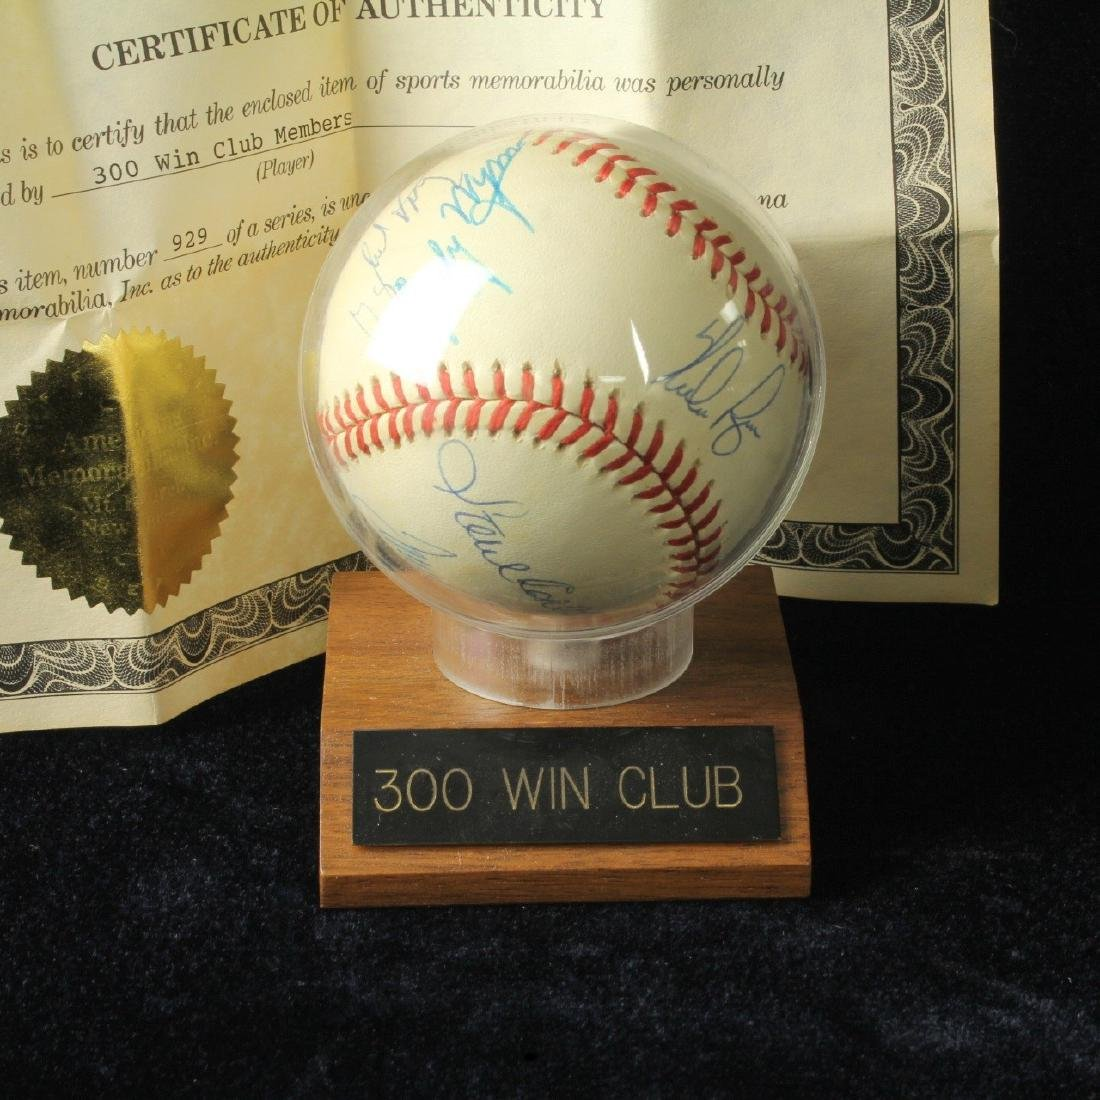 Autographed Baseball Signed by 8 Hall of Fame Pitchers